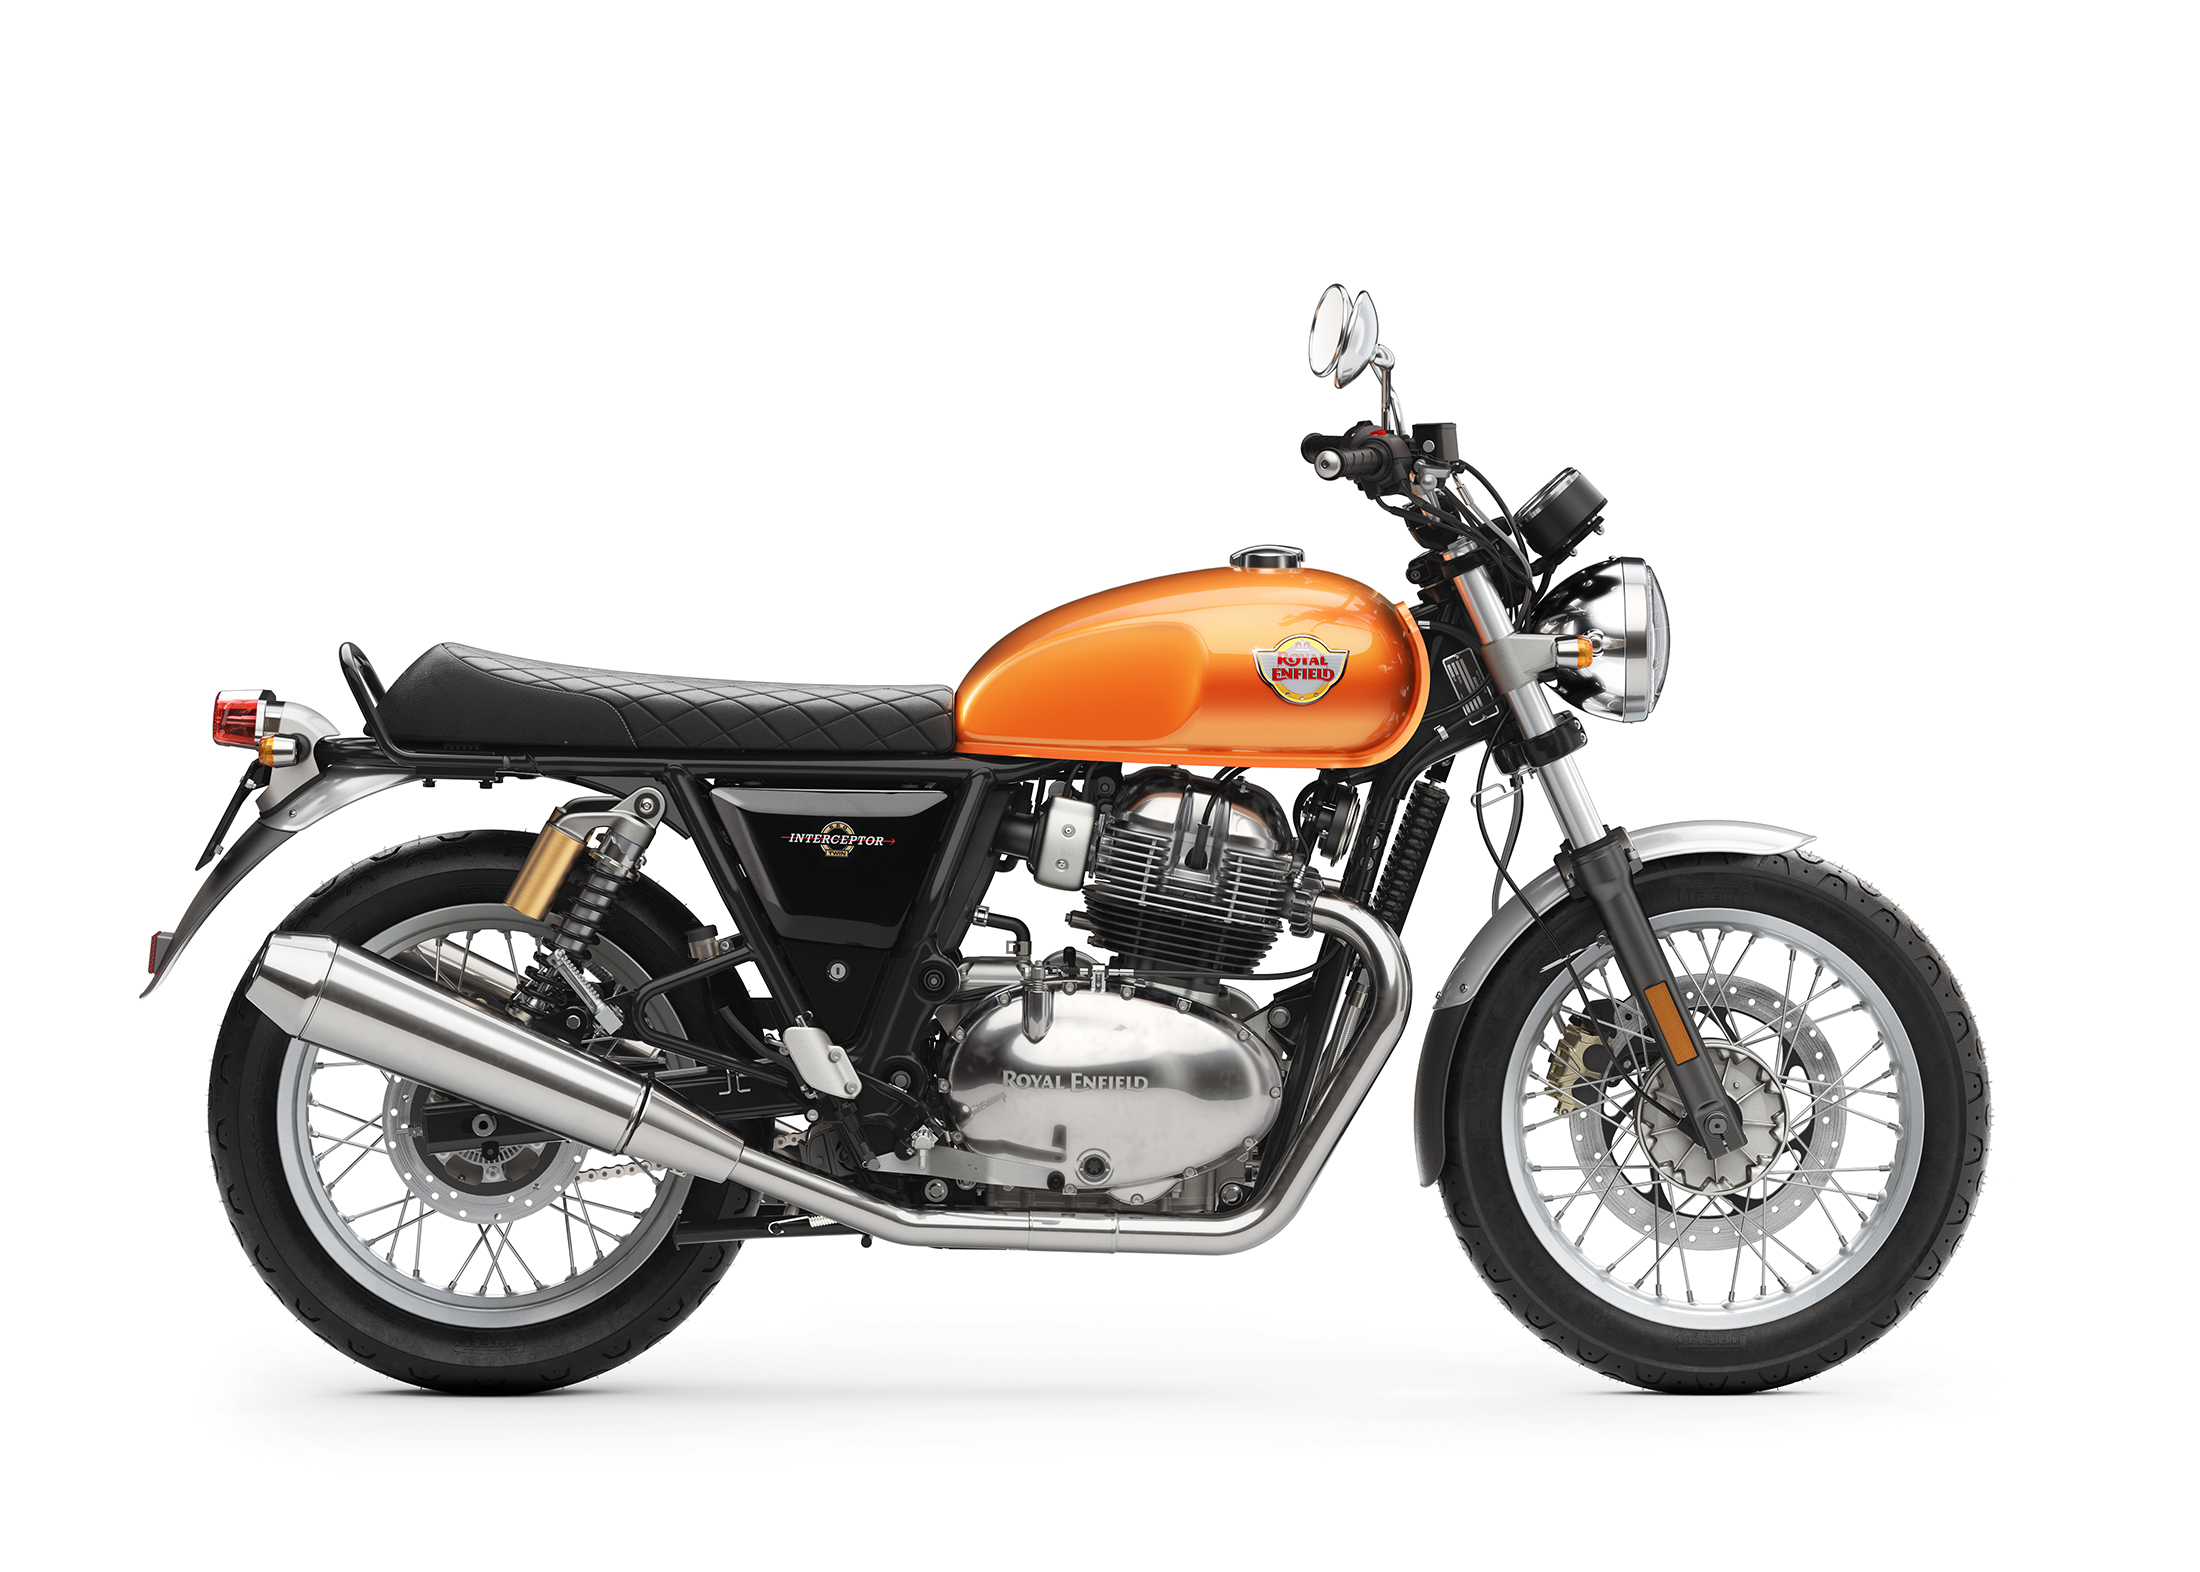 Royal Enfield Interceptor INT 650 The Interceptor is a roadster having an all-new, dedicated steel-tube cradle chassis. It has 18-inch front and rear Pirelli tyres and twin shock absorbers, along with front and rear disc brakes with ABS